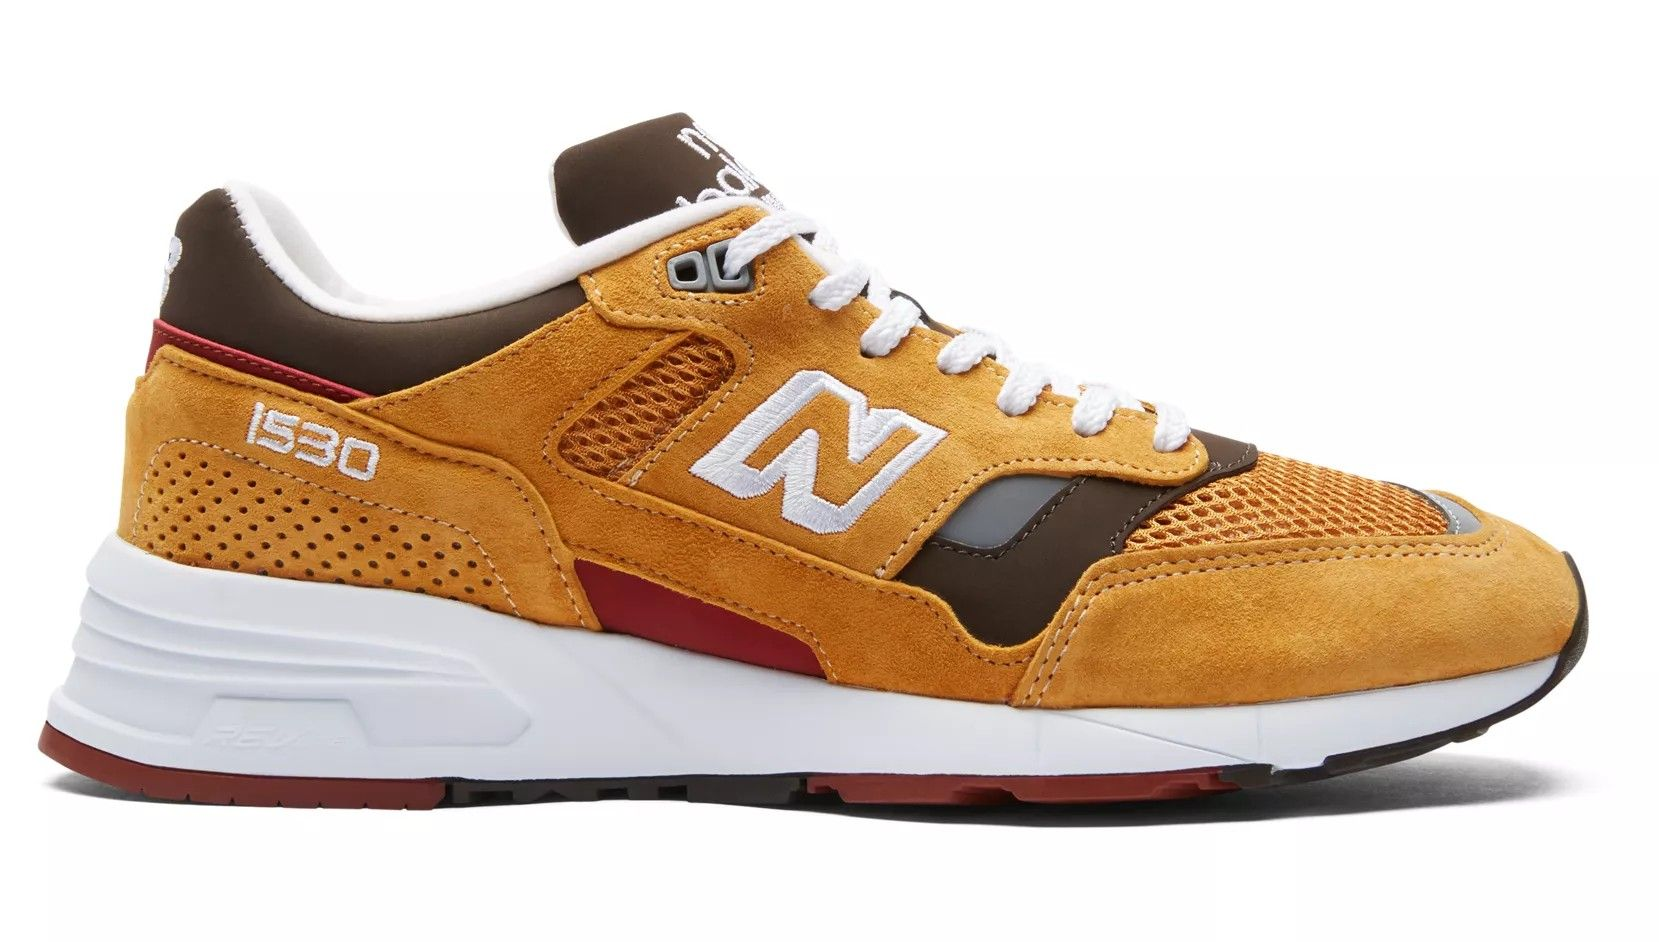 New Balance 1530 Eastern Spices Made in UK